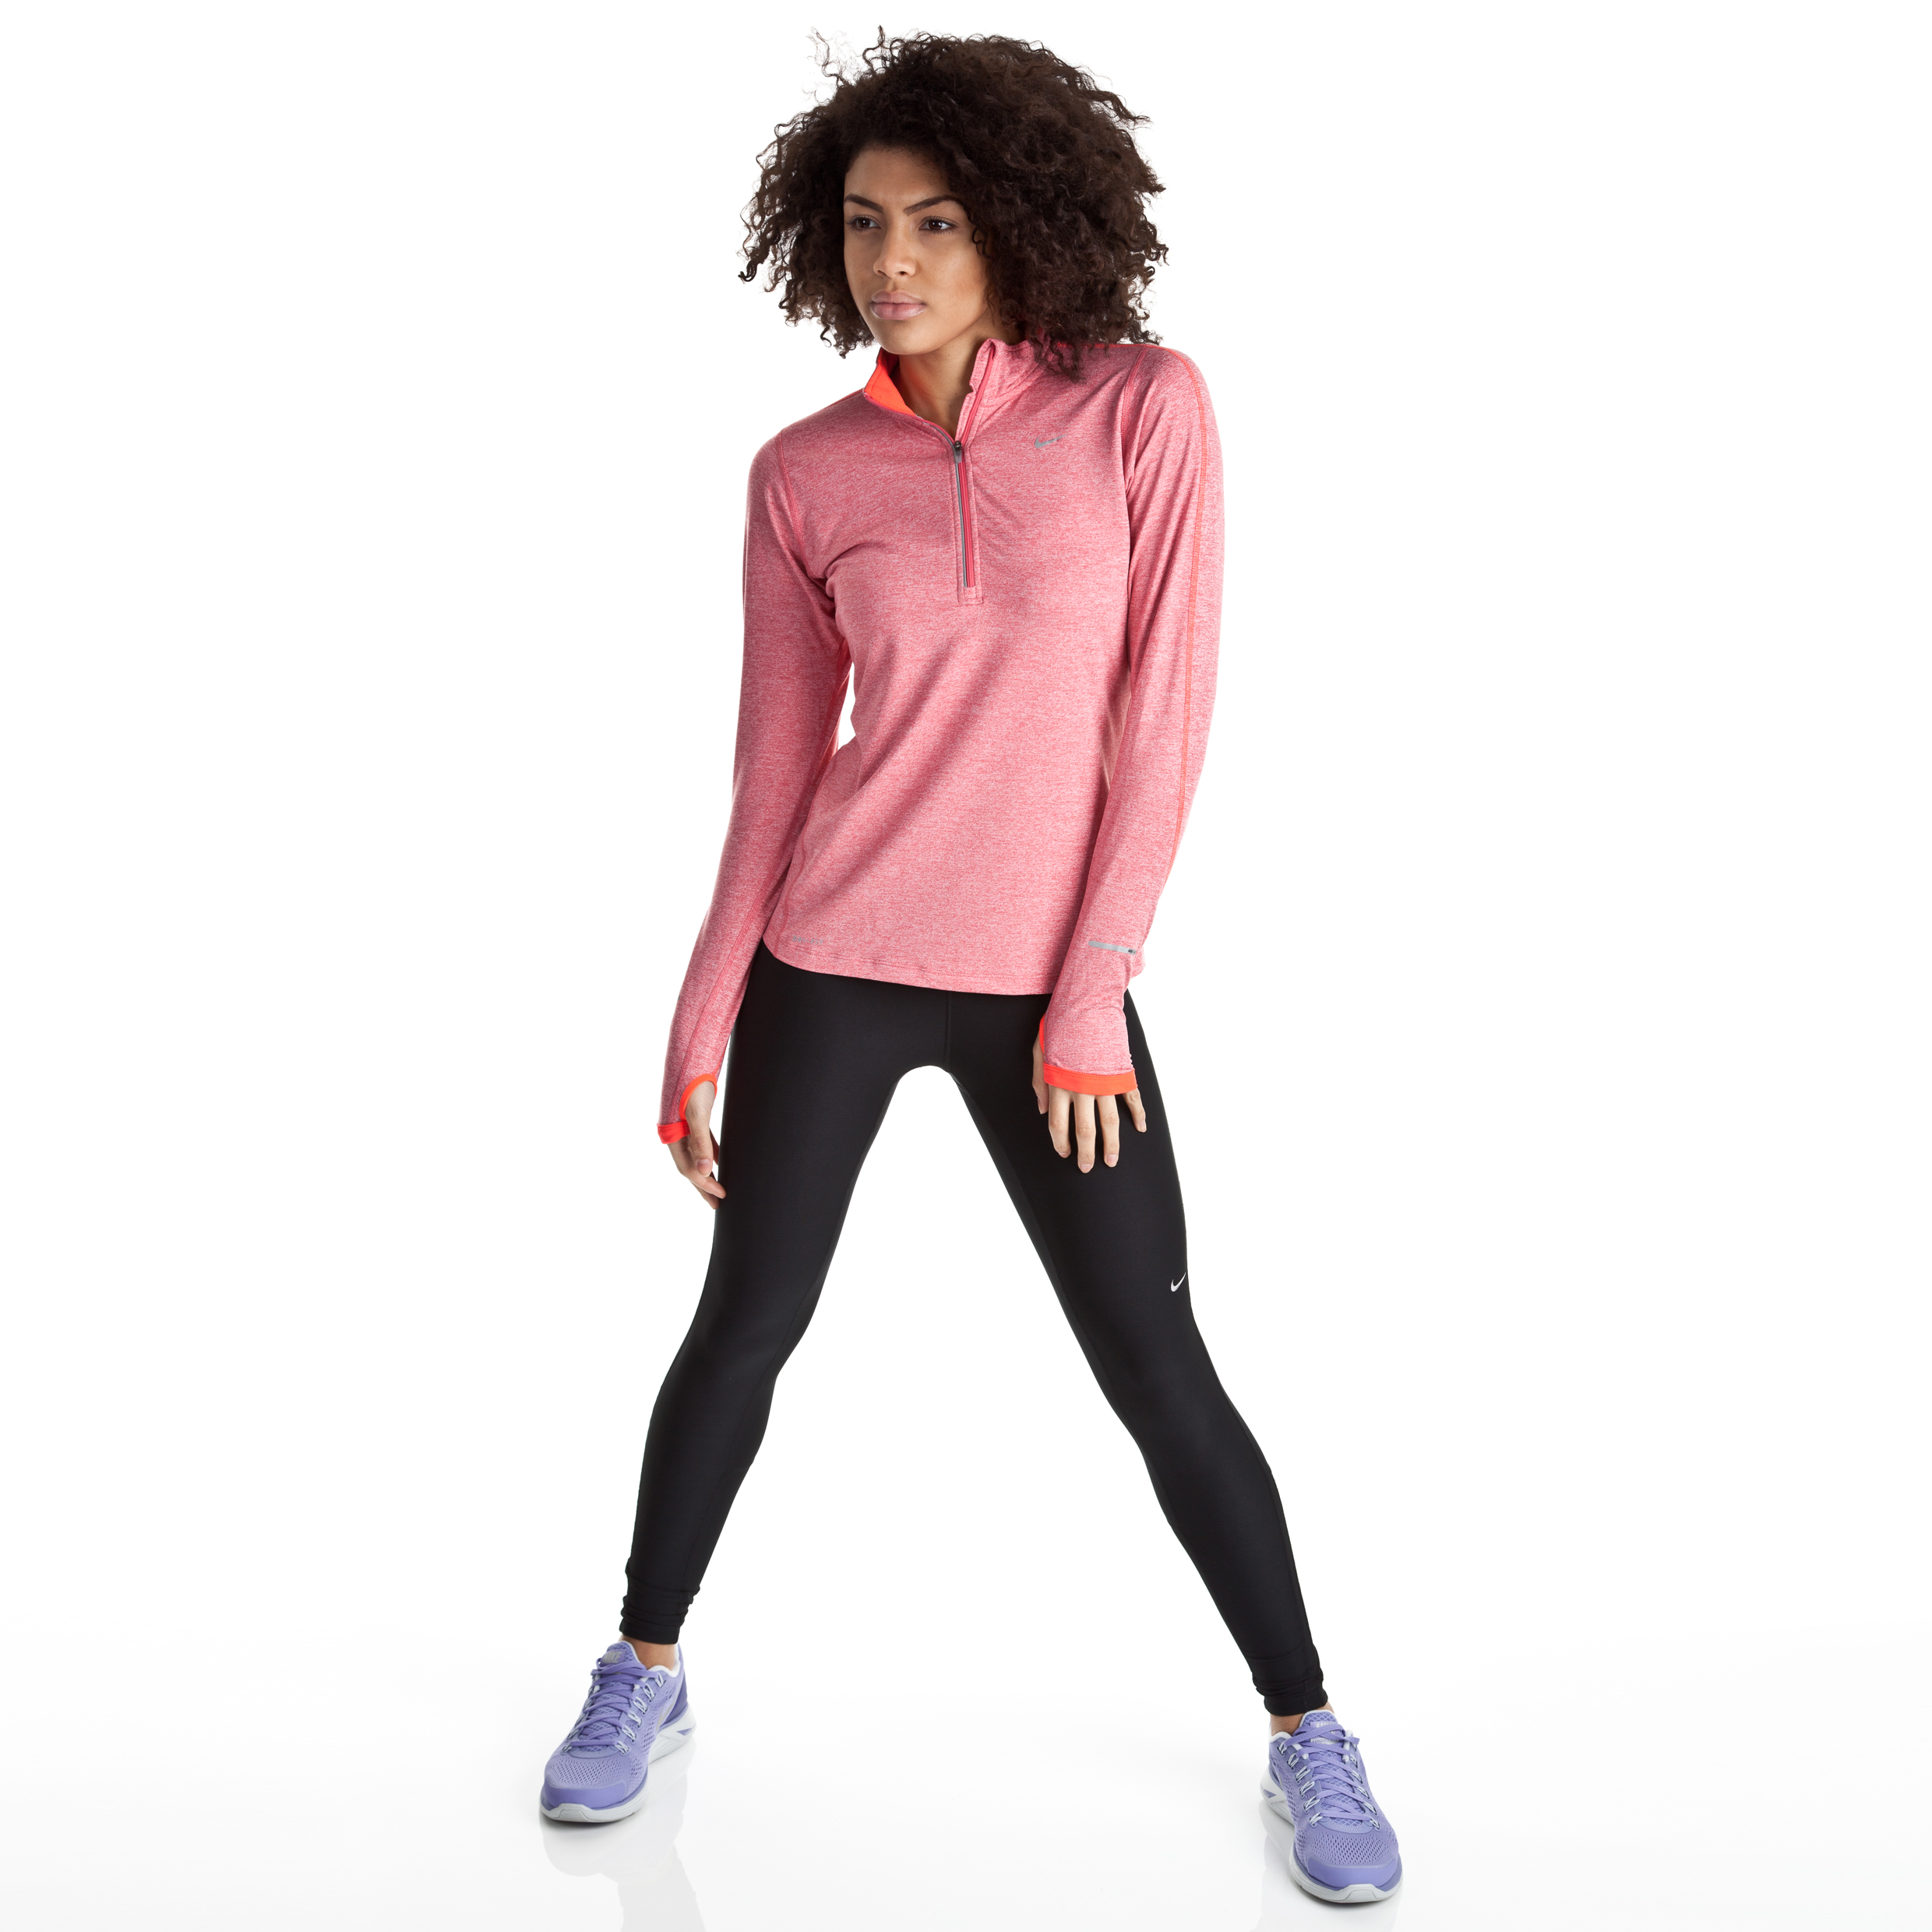 Nike Element Half Zip LS T-Shirt - Pink Clay/Htr/Reflective Silv - Womens